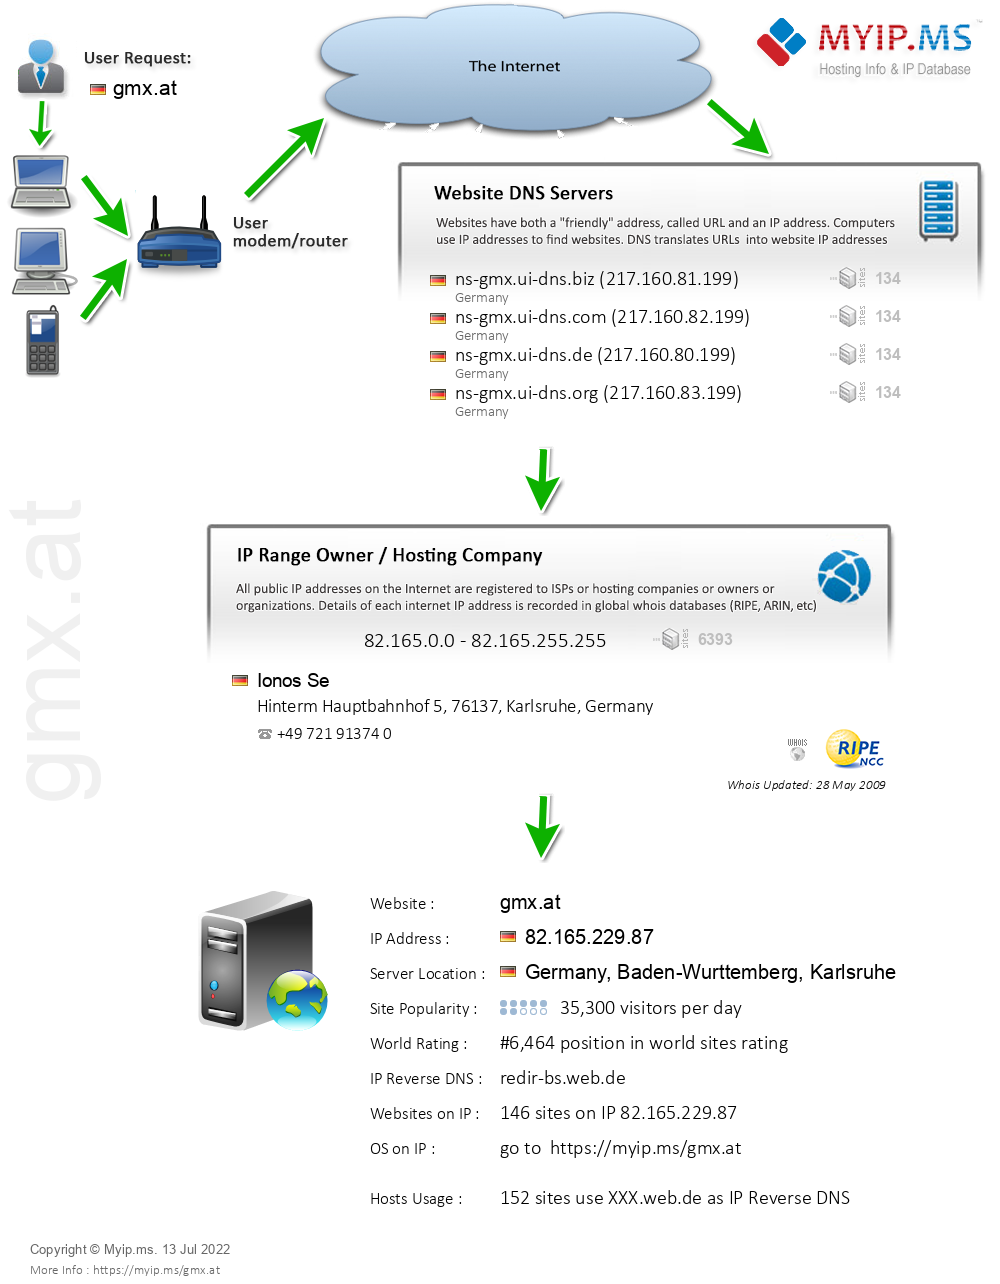 Gmx.at - Website Hosting Visual IP Diagram